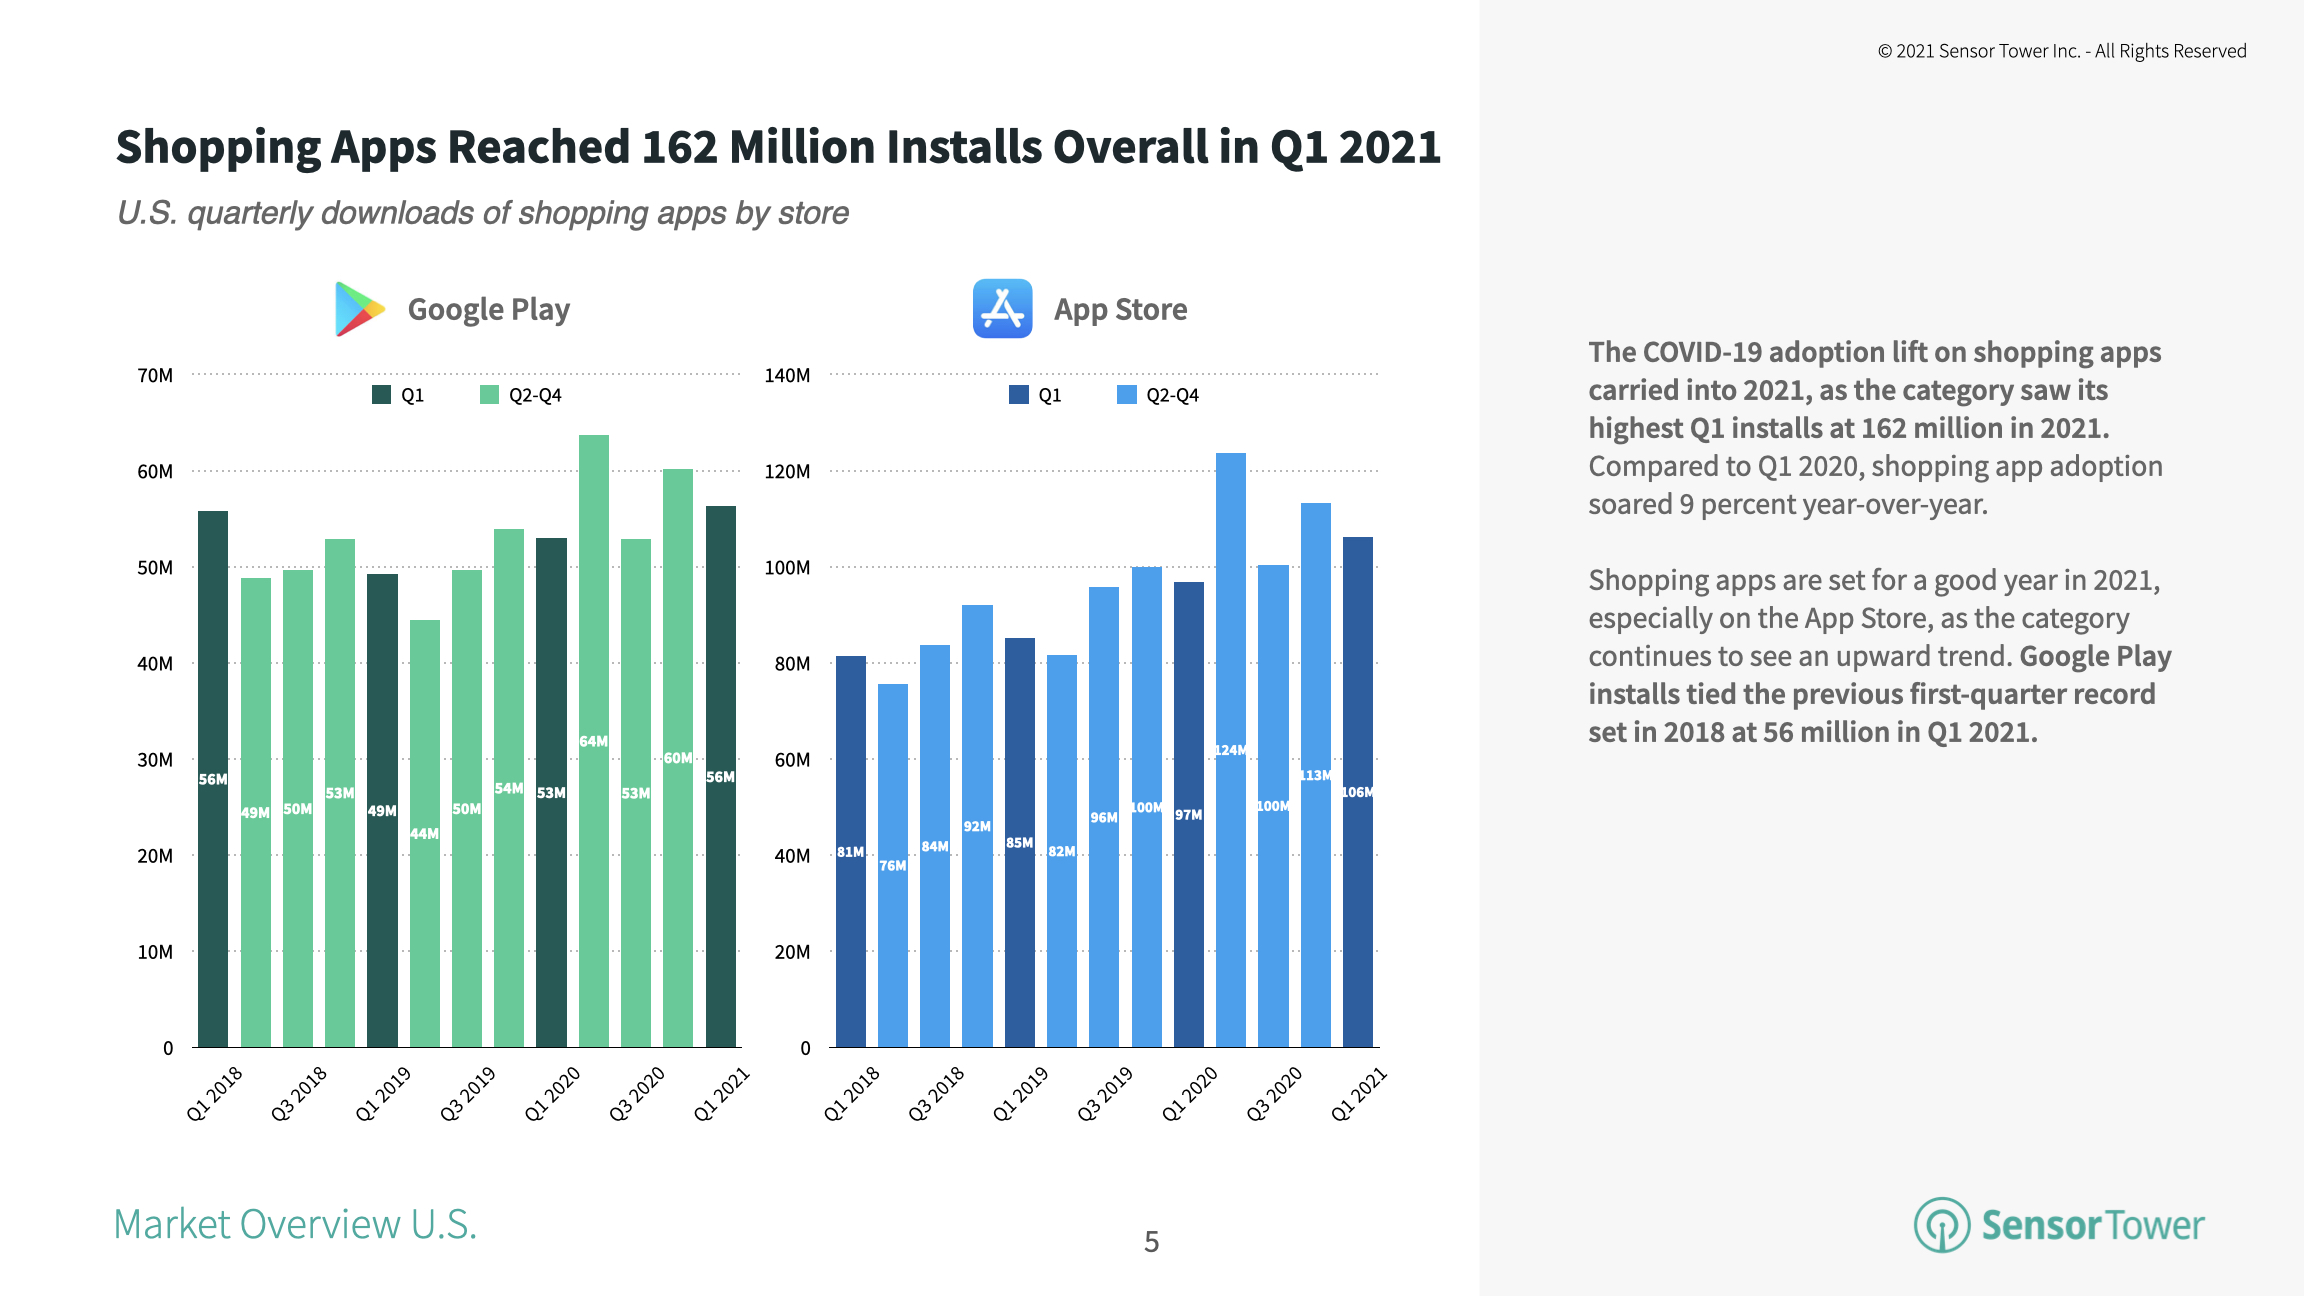 Marketplace apps accounted for 33 percent market share of installs among the top 100 U.S. shopping apps in 1Q21.